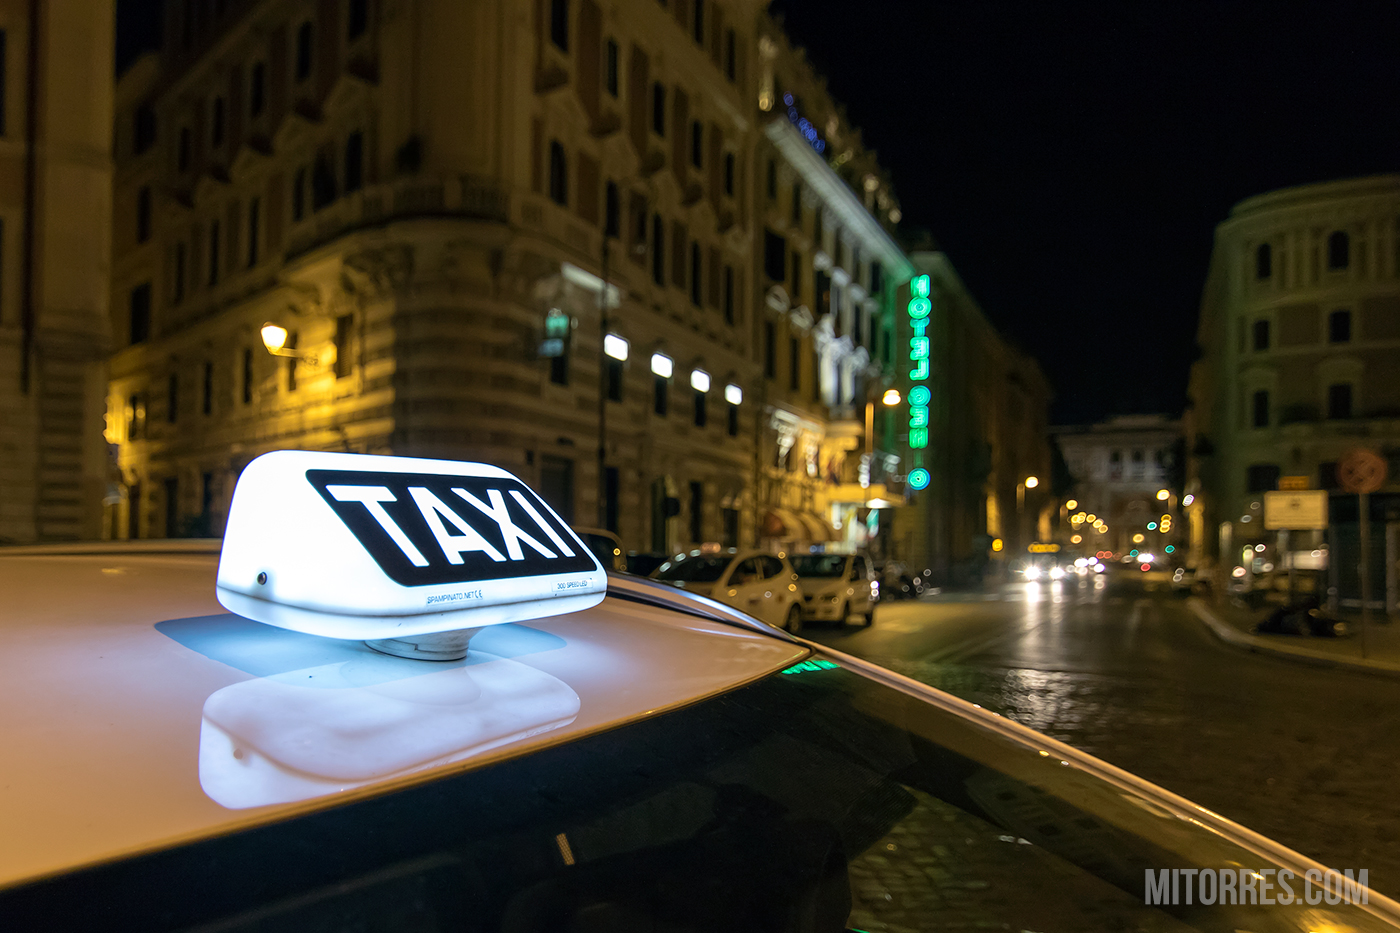 Taxi in Rome. Photo: Marlon I. Torres